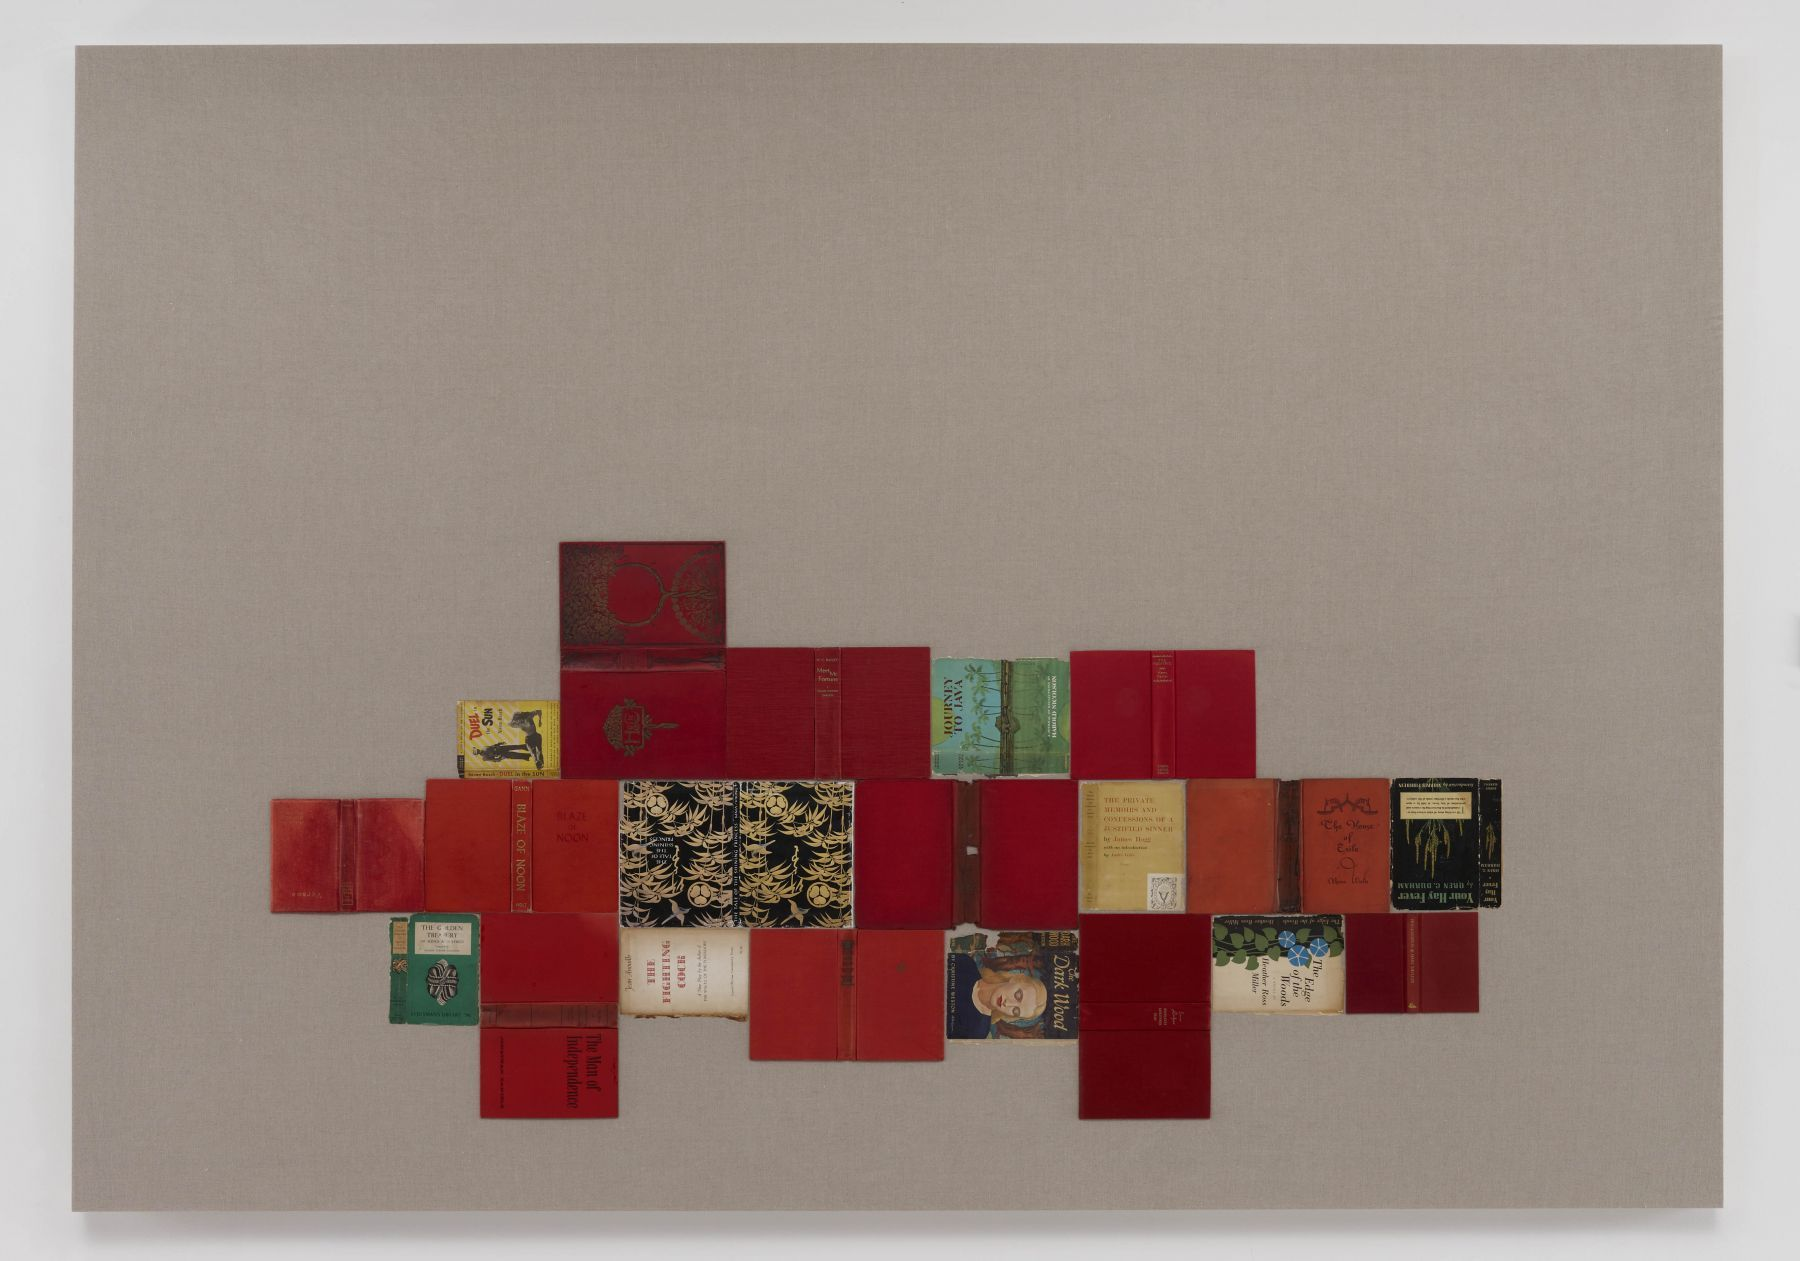 Valeska SoaresThe House of Exile (from Bindings)2011Antique paper jackets and hardcover books on linen72 x 102 inches (182.9 x 259.1 cm)VS 35